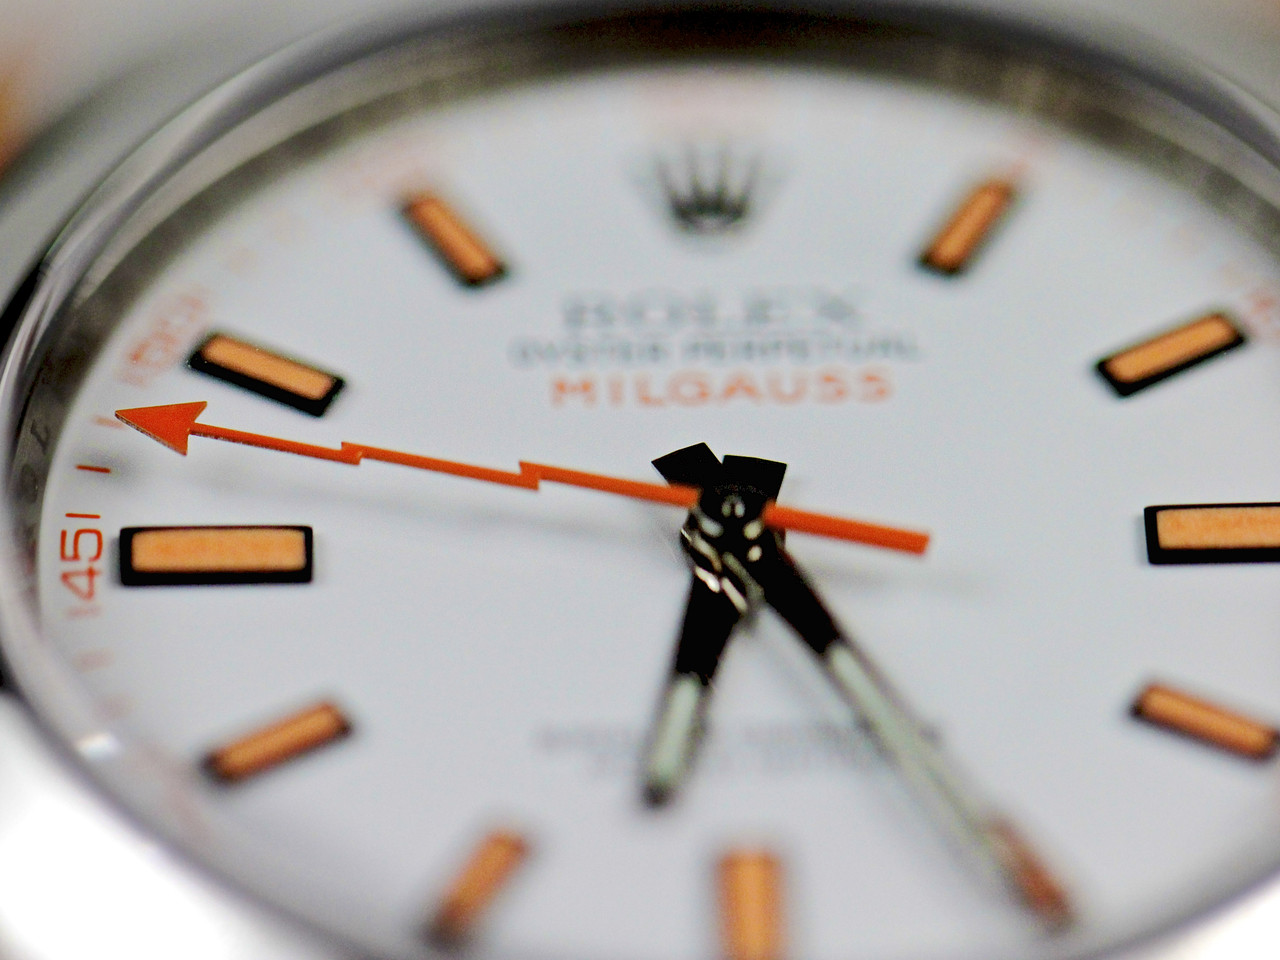 White Dial & Orange Hour Markers - Pre-Owned Rolex Watch - Milgauss White Dial 116400 www.Legendoftime.com Chicago Watch Center